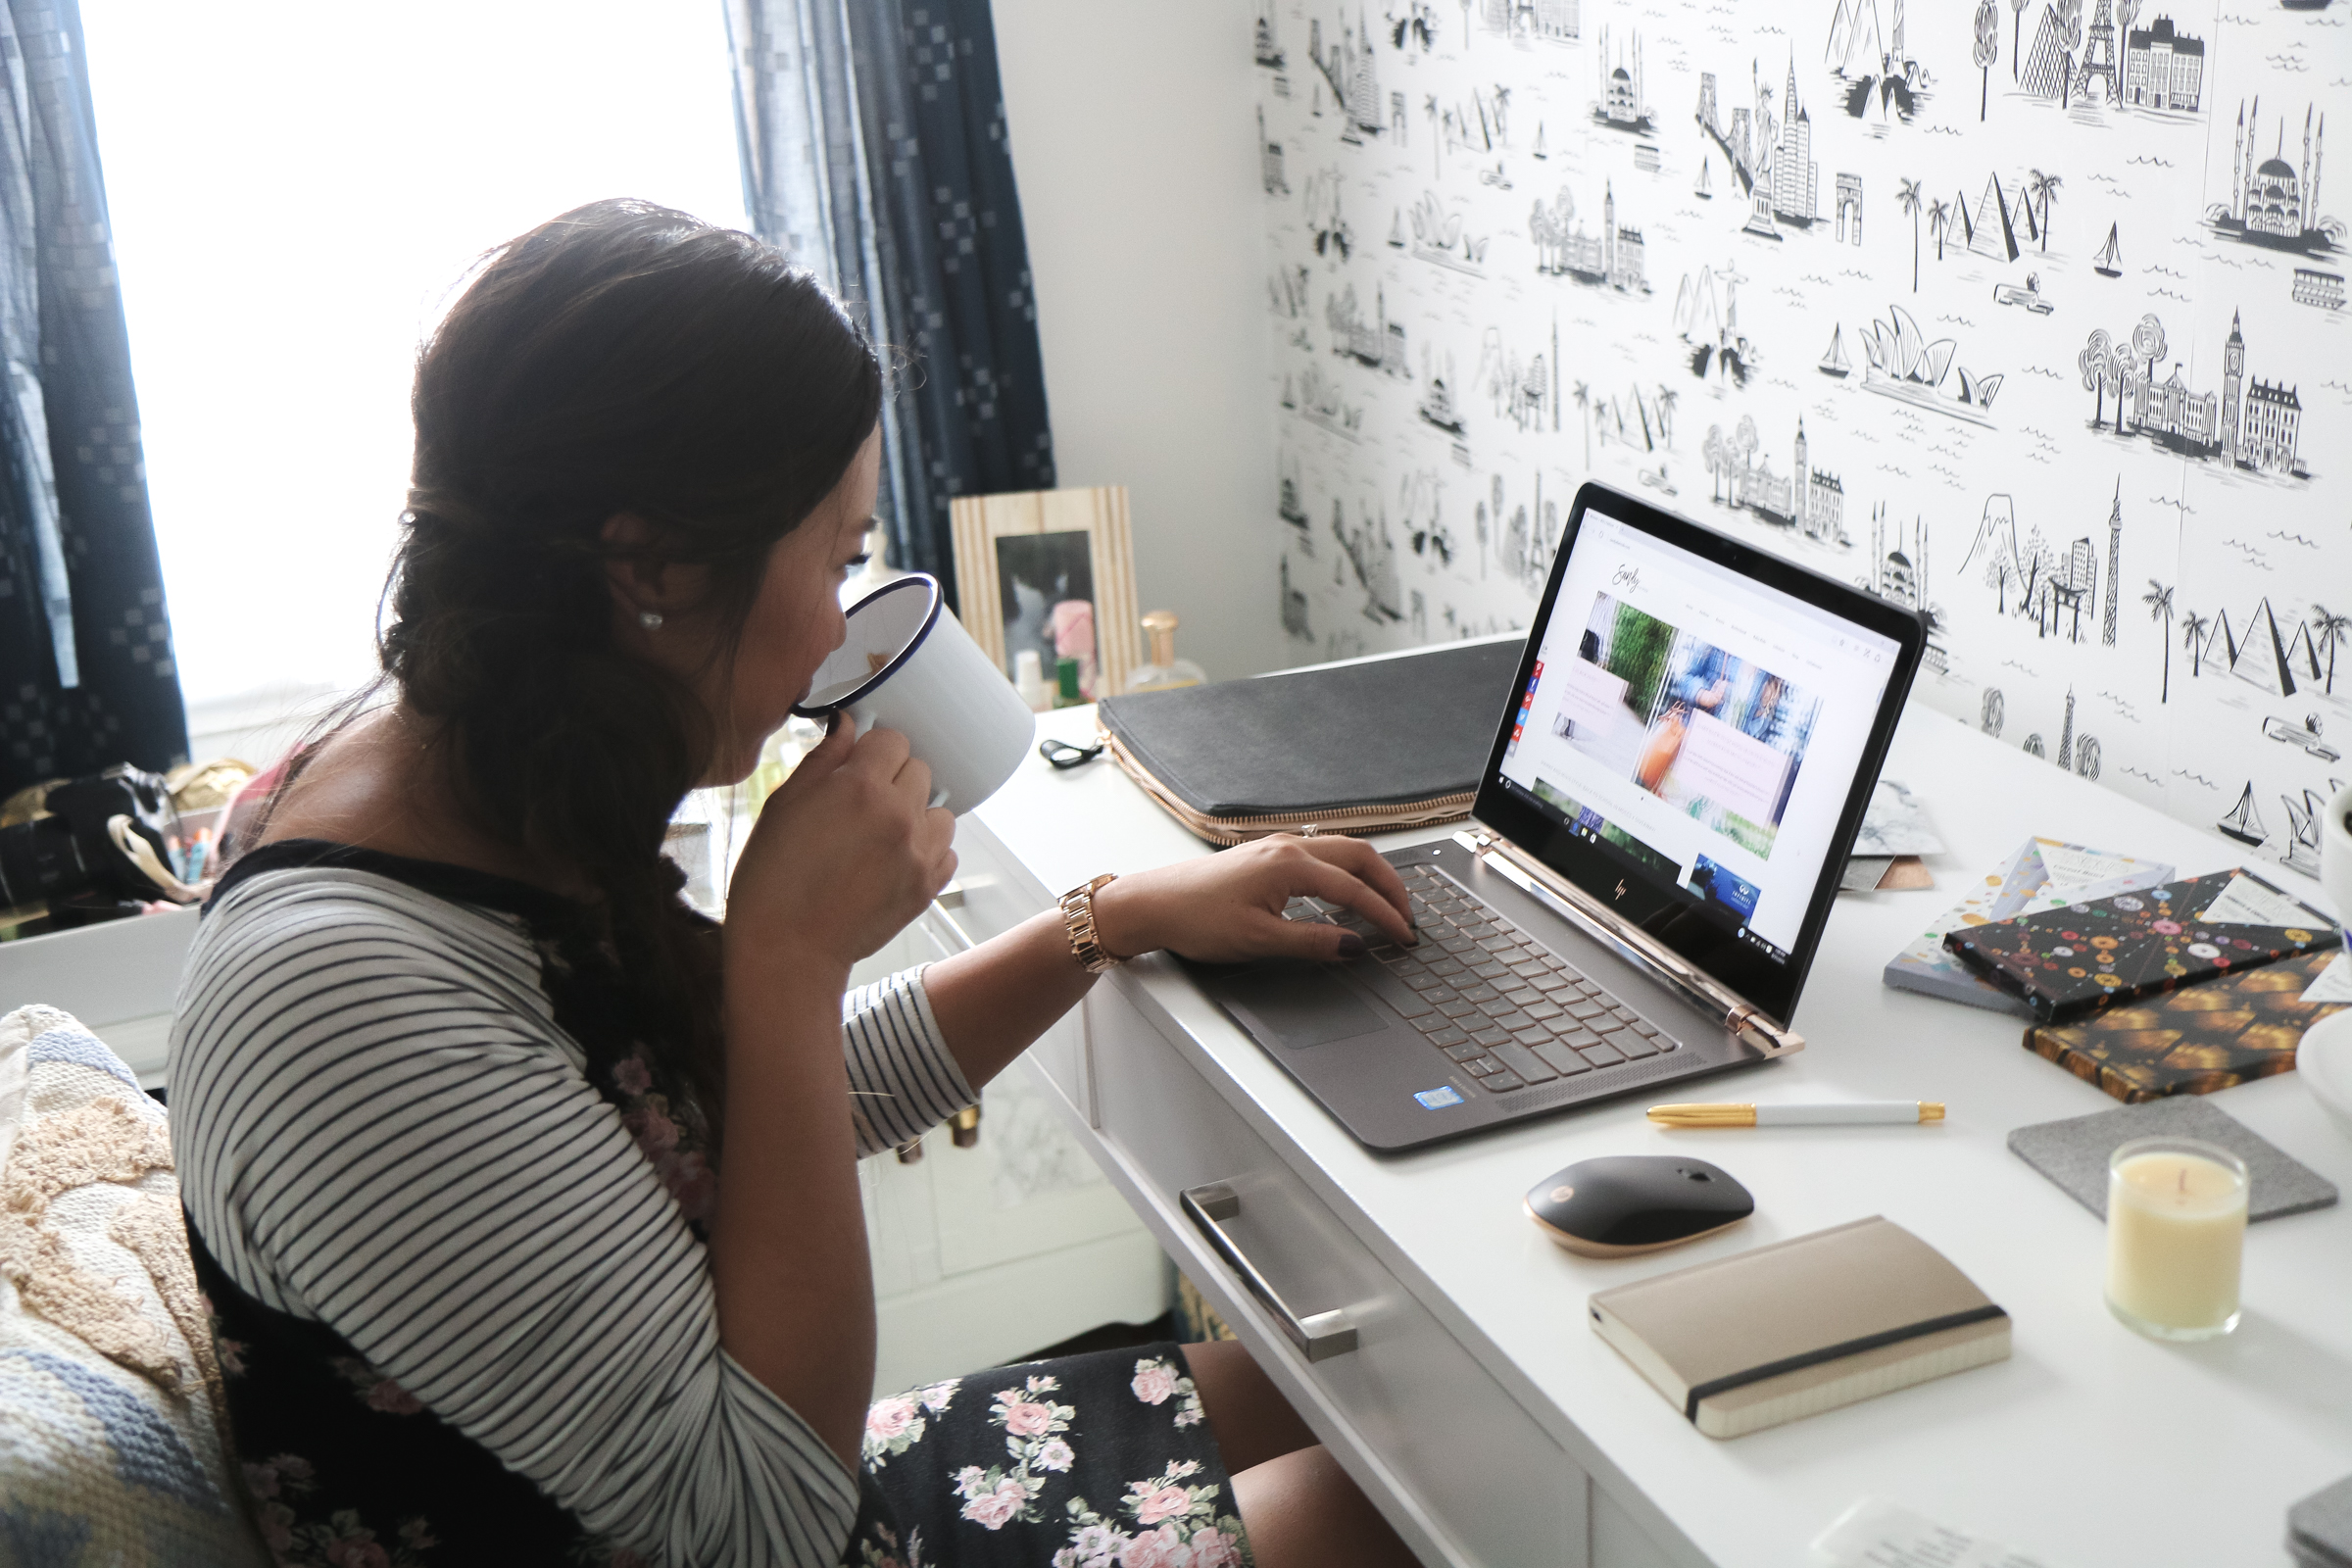 Using the HP Spectre everyday